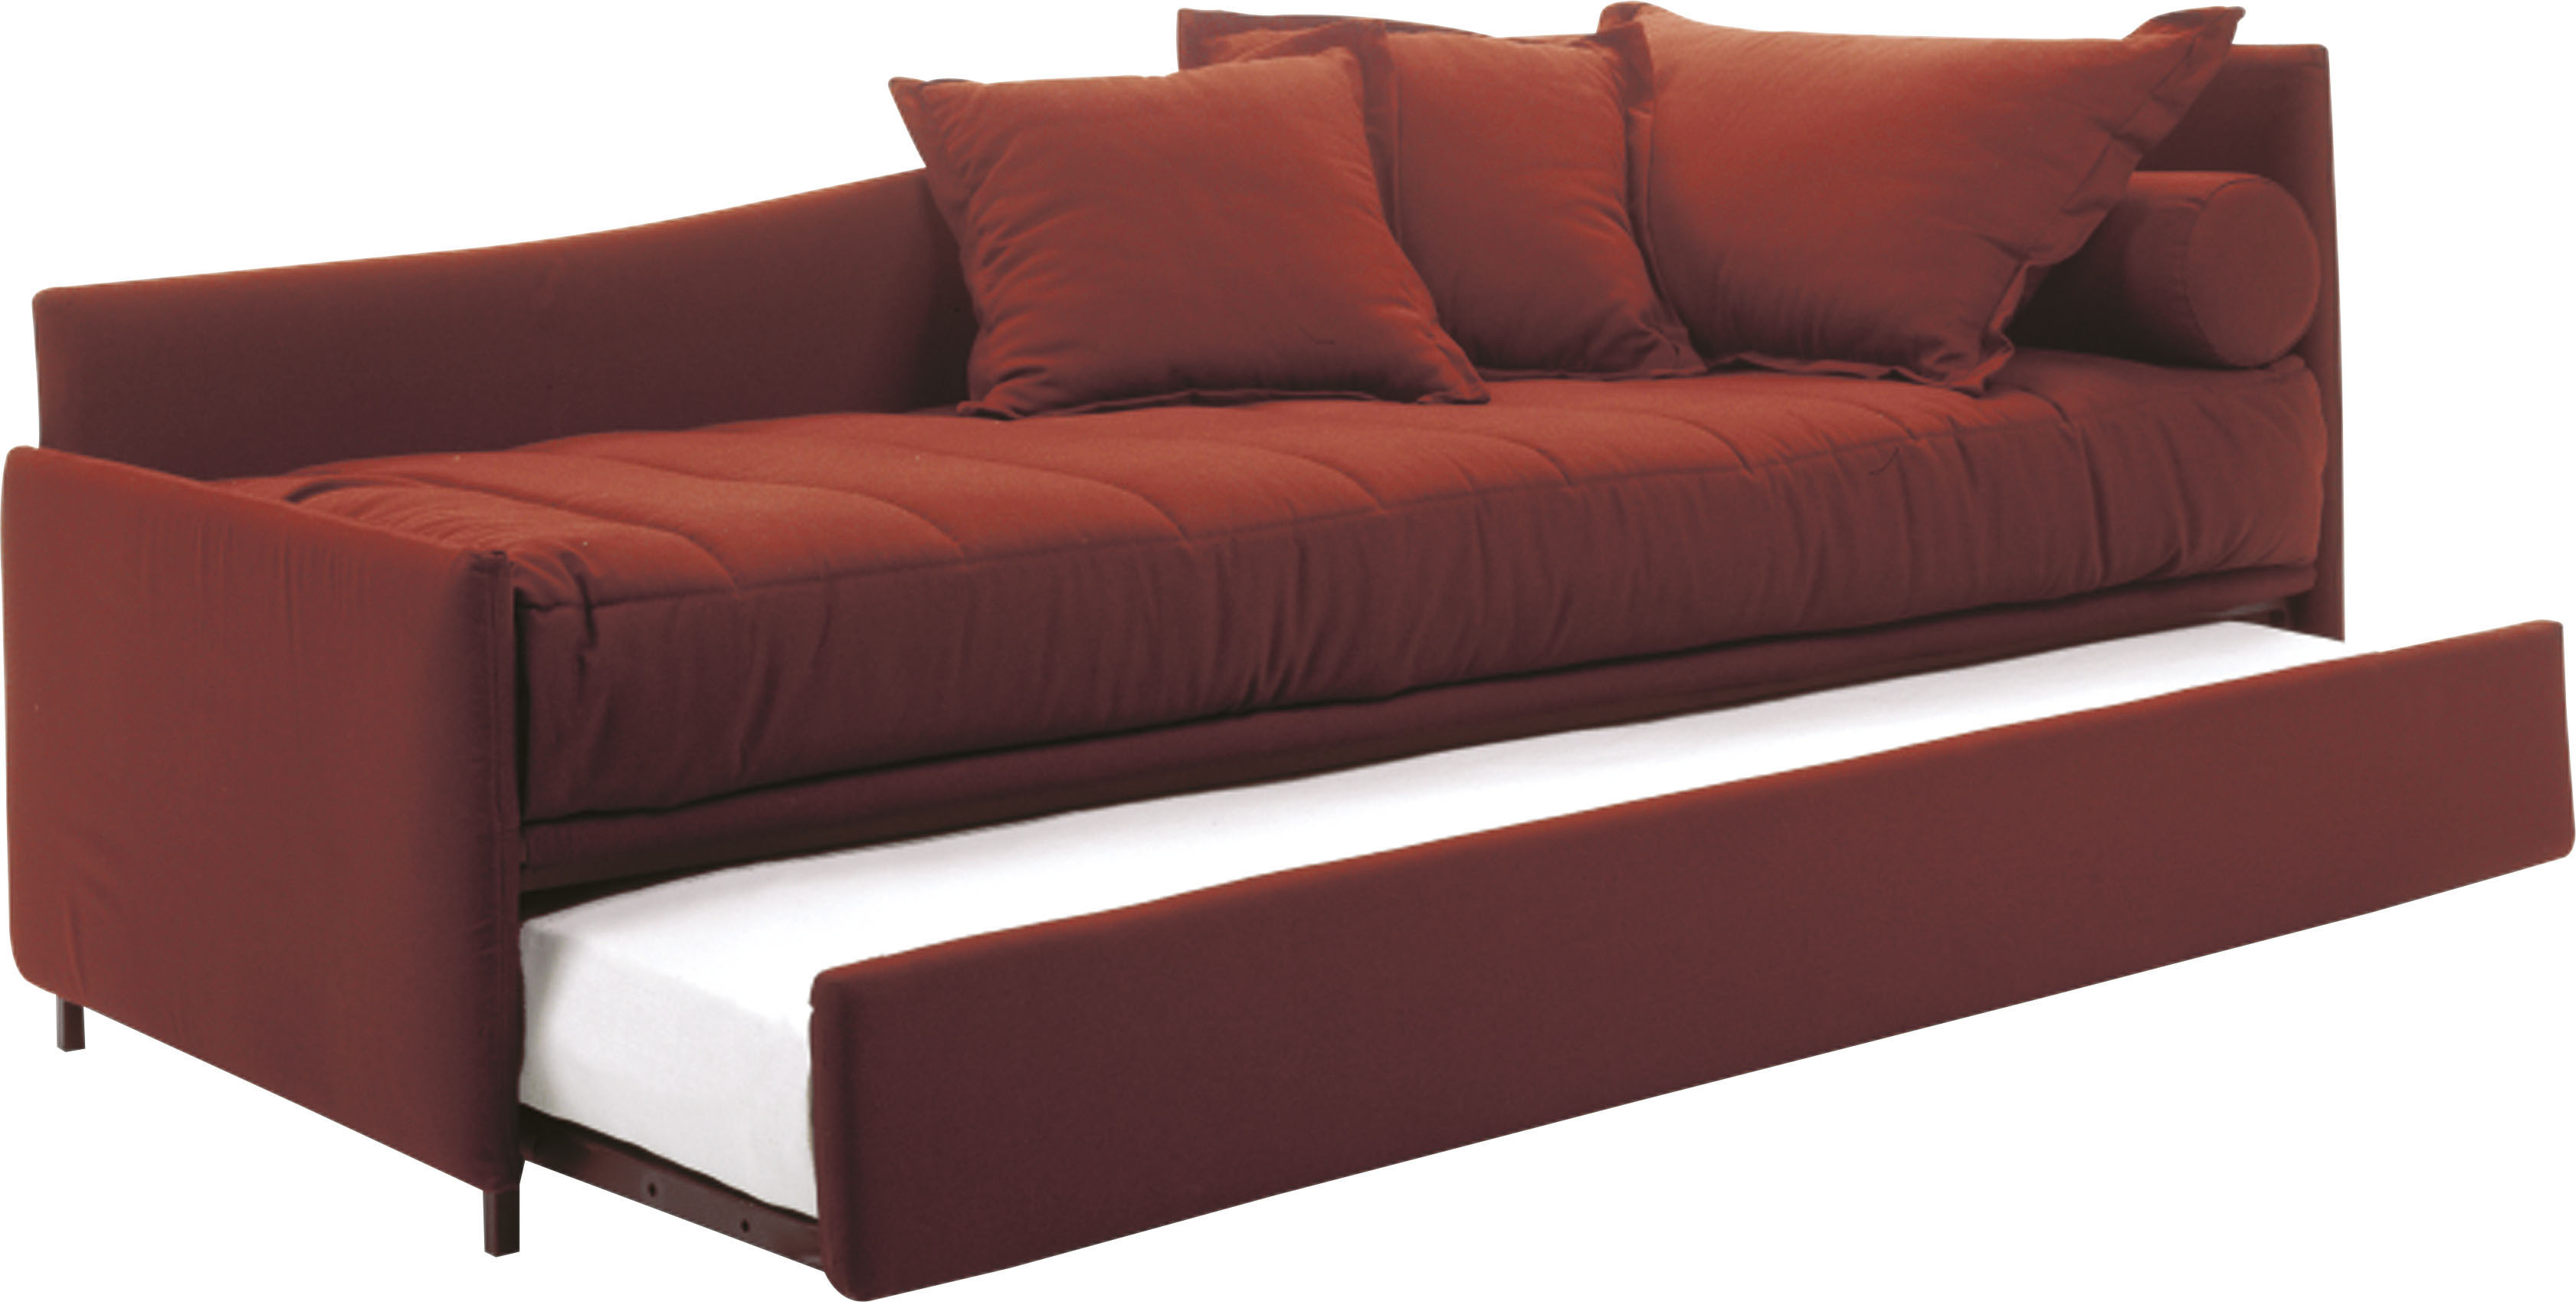 Letto Onda Mondo Convenienza ~ duylinh for